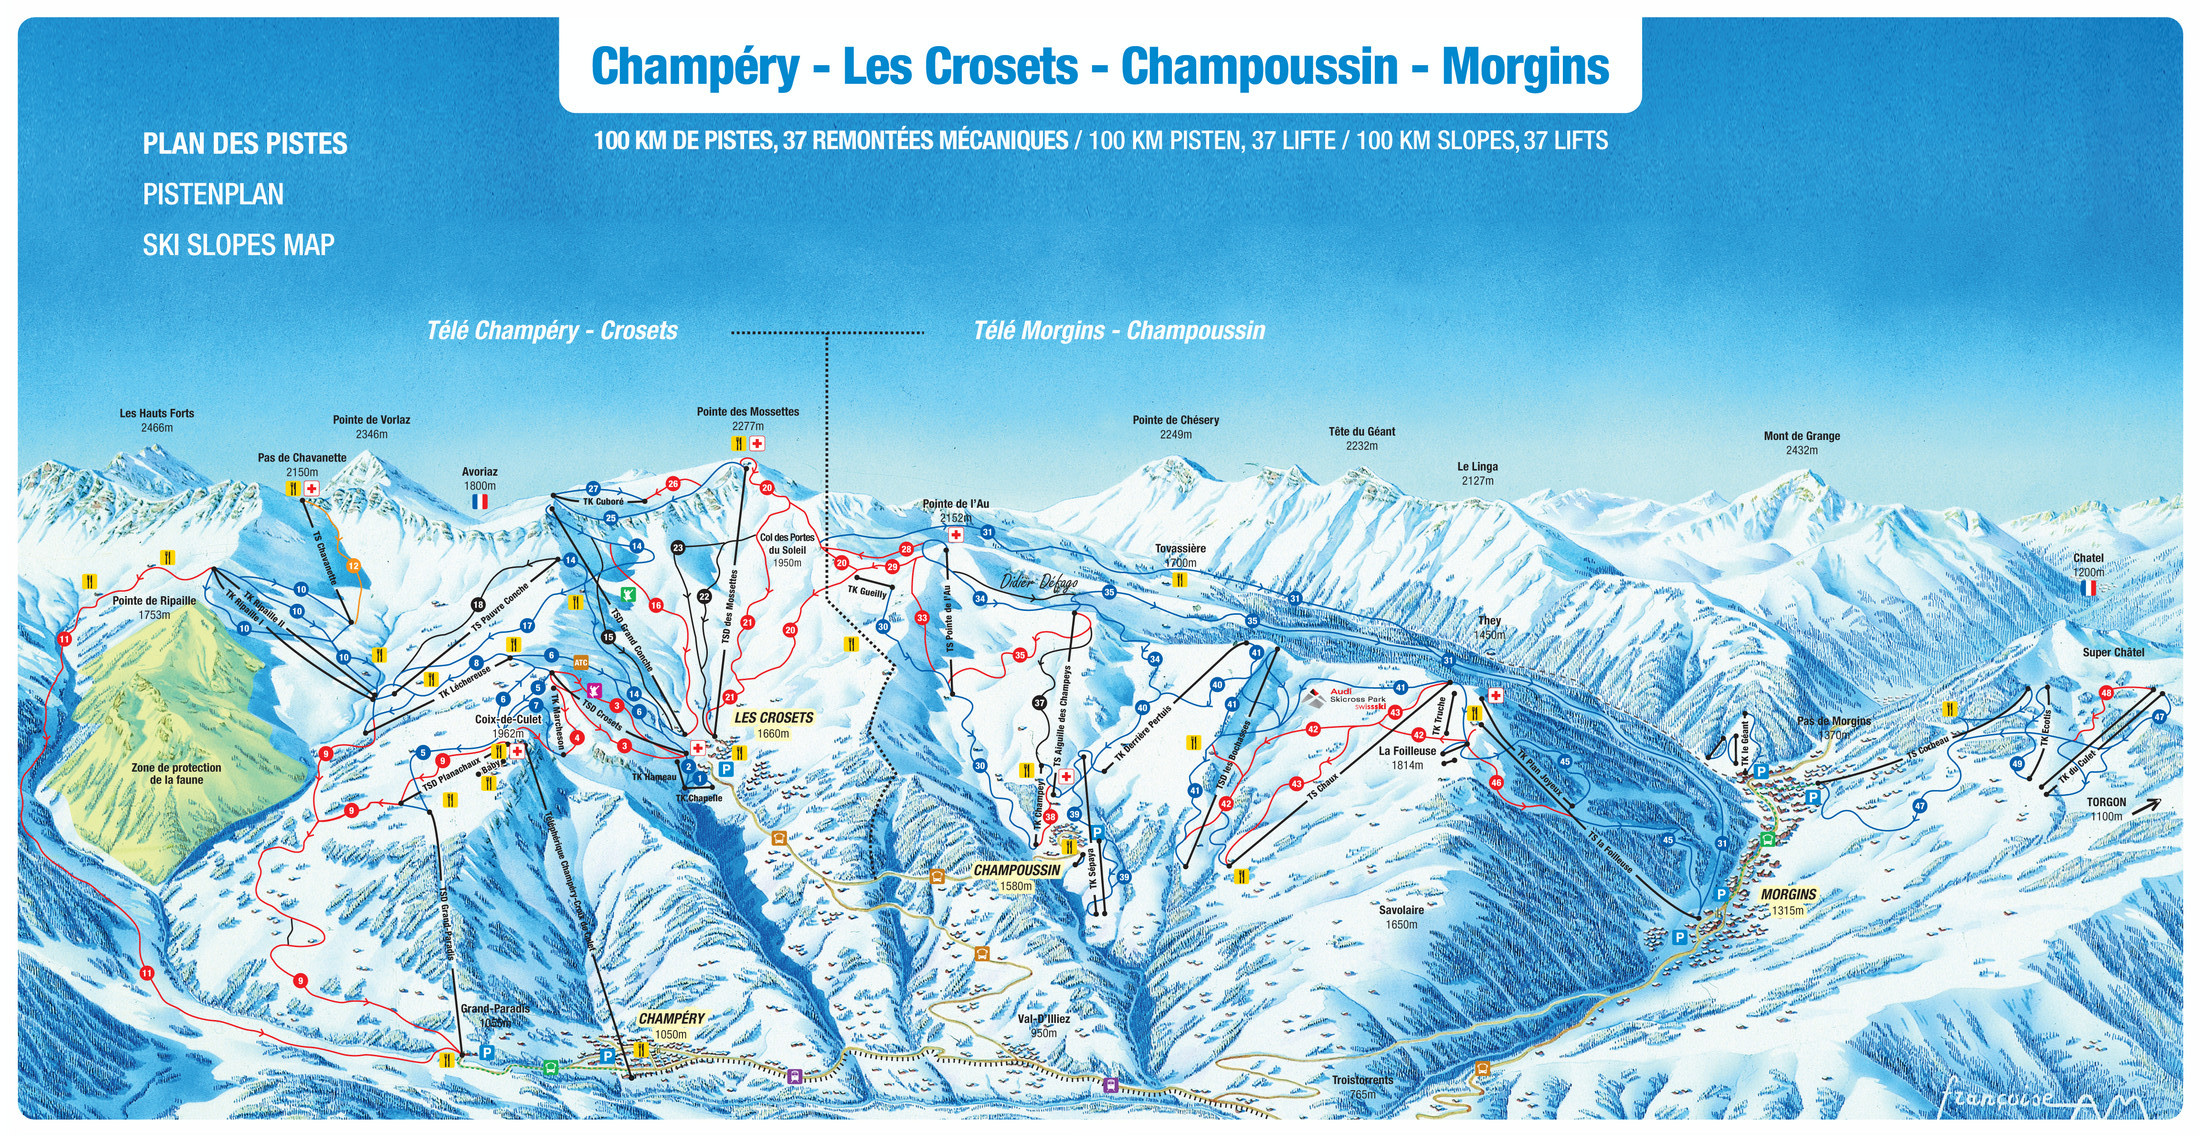 Le Meilleur Les Crosets Piste Map Plan Of Ski Slopes And Lifts Ce Mois Ci